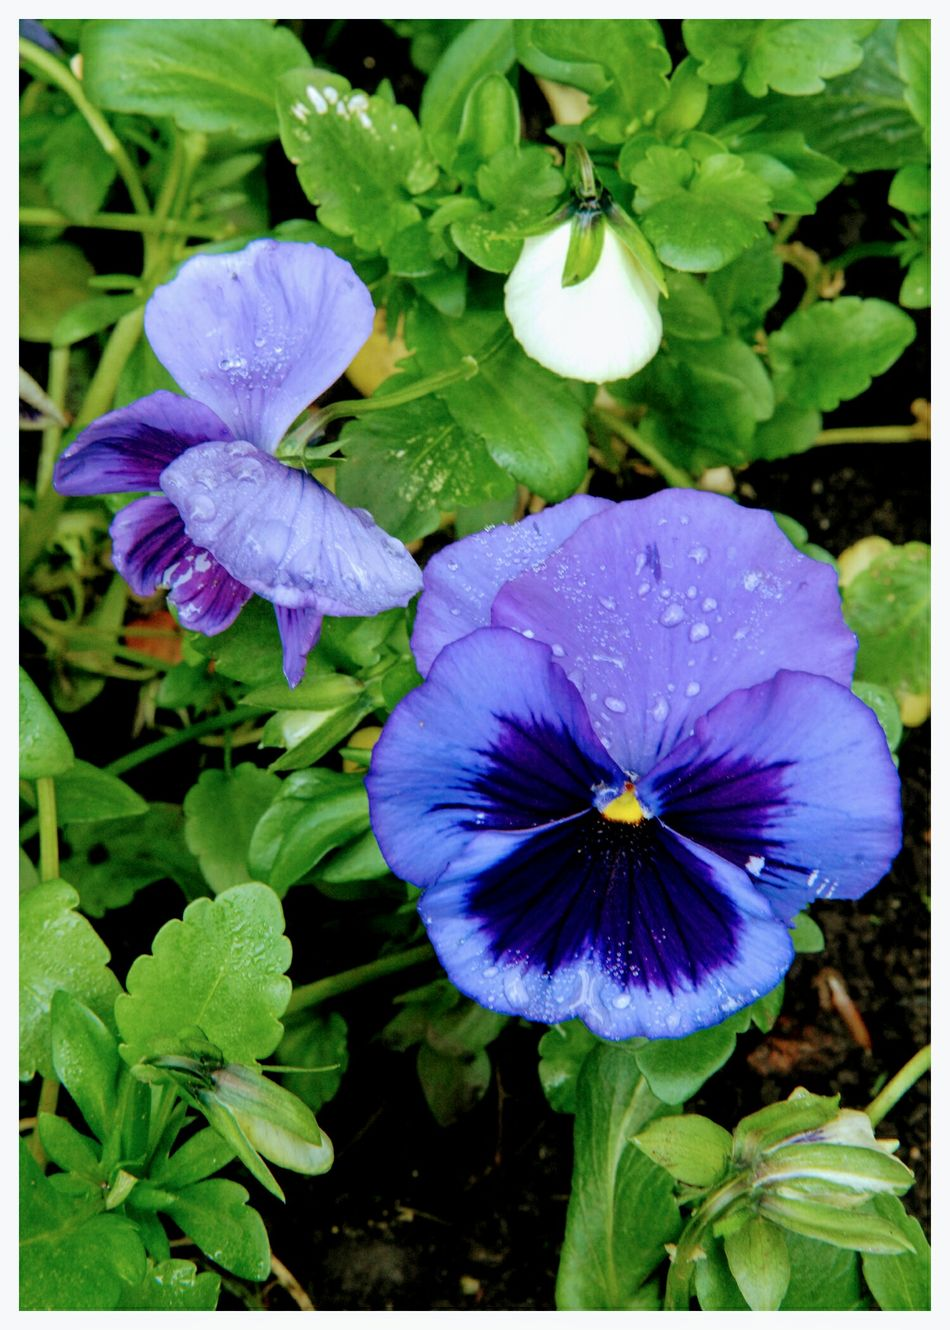 Flowers Purple Freshness Nature Leaf Fragility Growth Flower Head Plant Beauty In Nature Close-up Wet Blooming Outdoors Garden Flowers Petal Rain Drops On Petals Refreshing :)